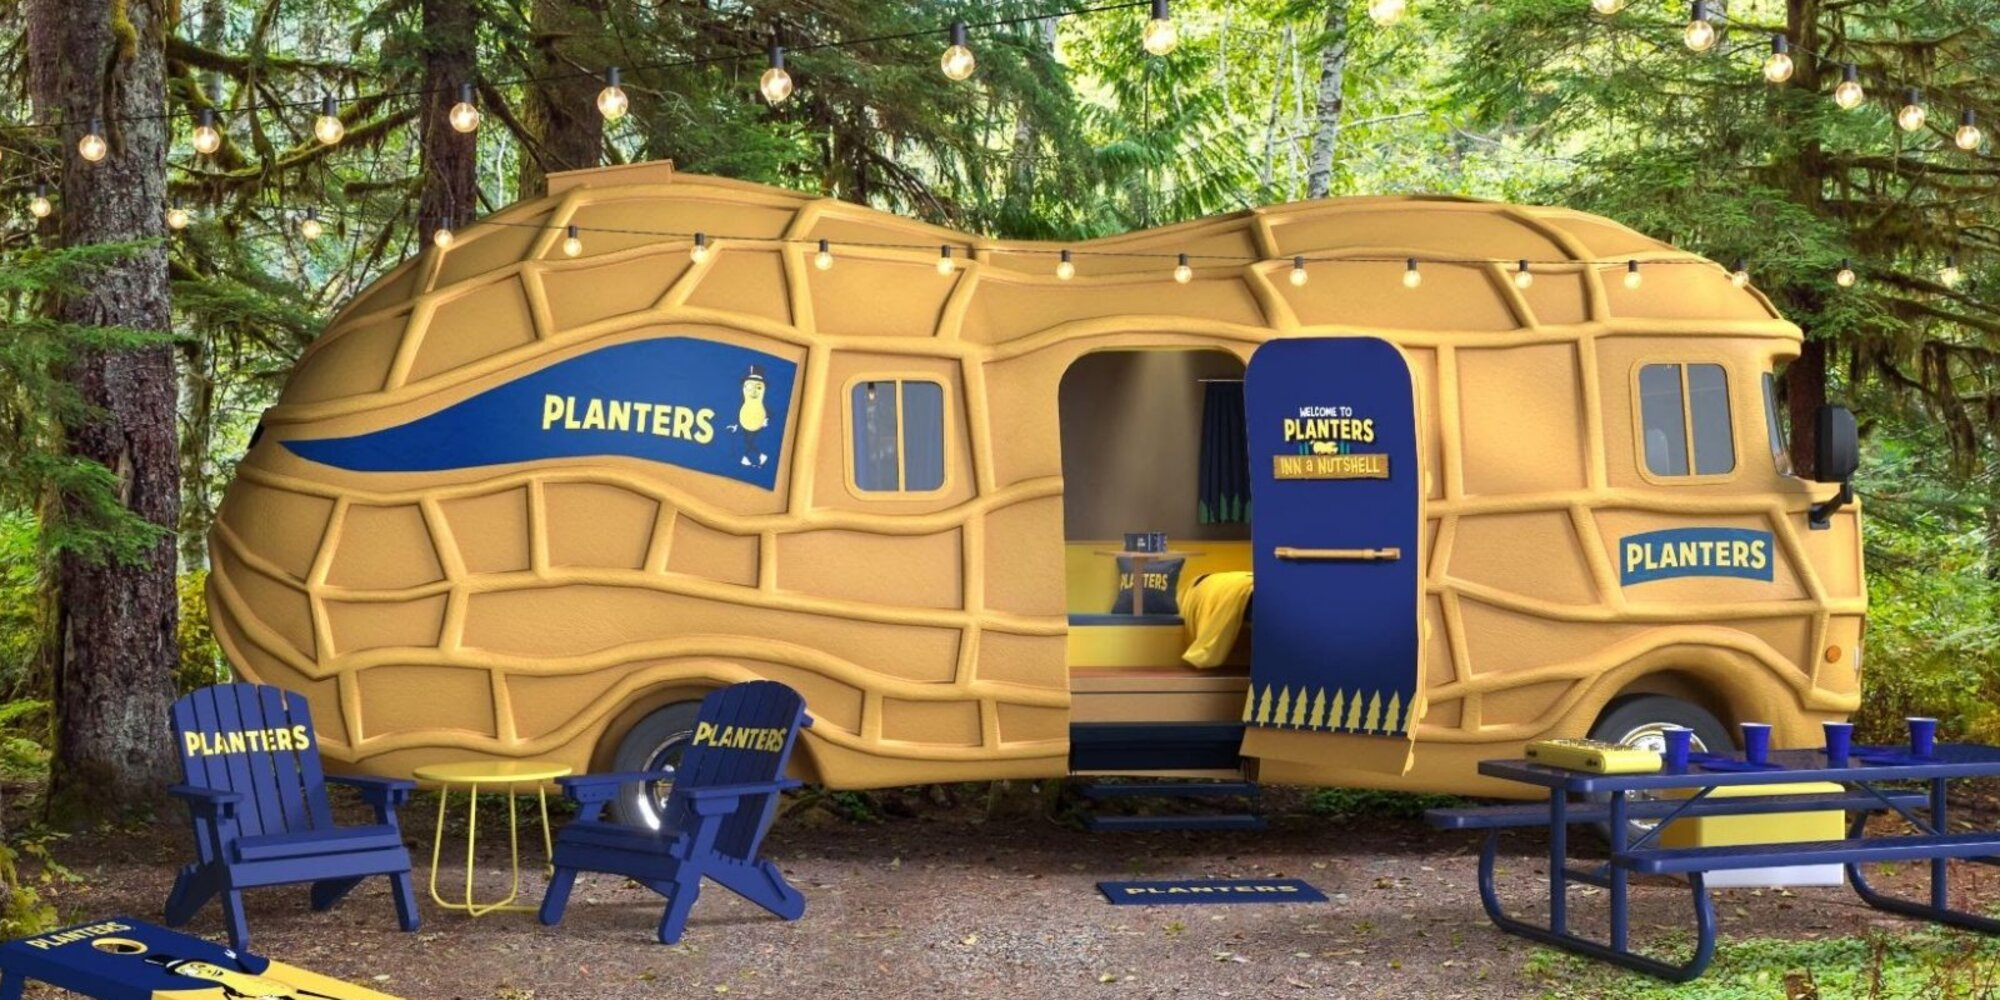 Planters Is Giving Fans a Chance to Stay in Their Gigantic Peanut 'Motel'